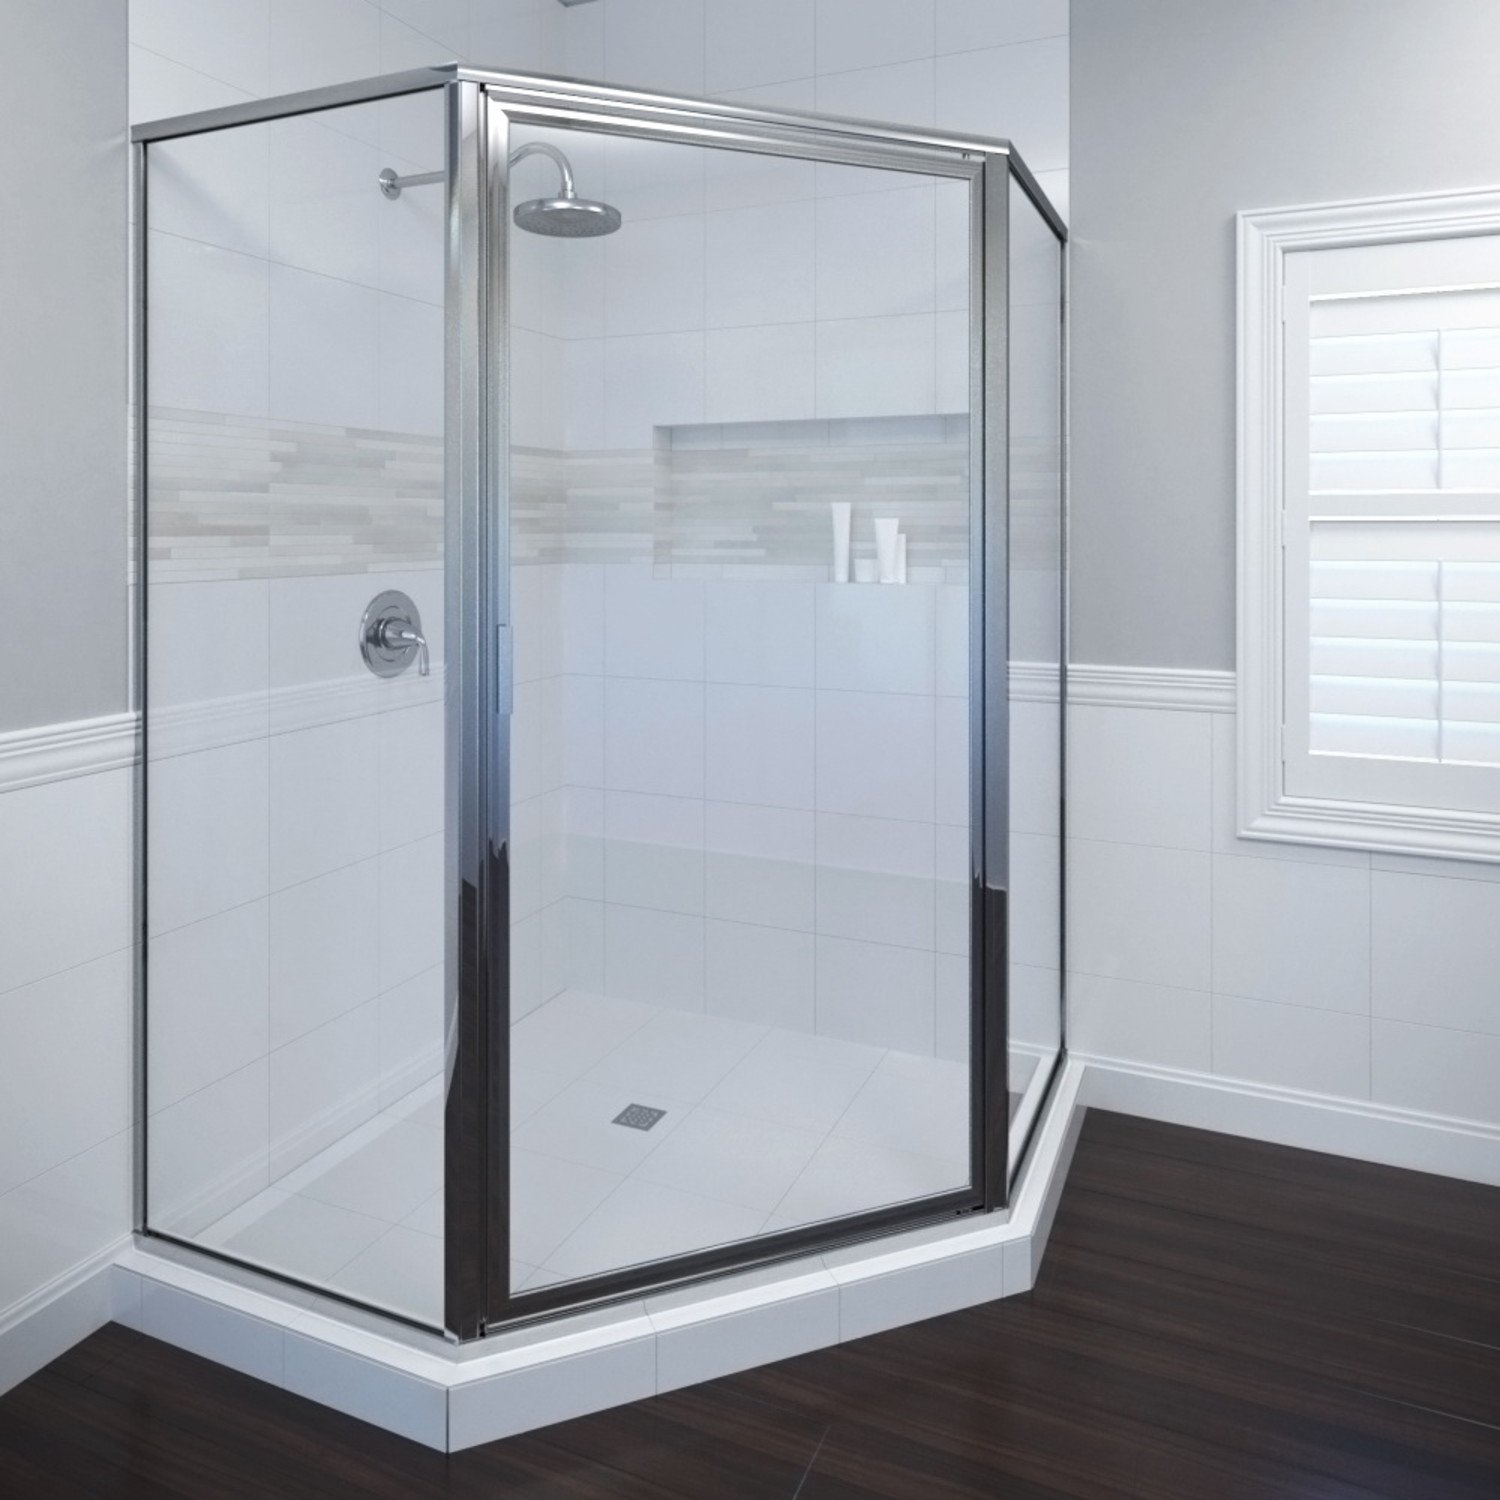 Basco Deluxe Neo Angle Shower Door, Clear Glass, Oil Rubbed Bronze ...